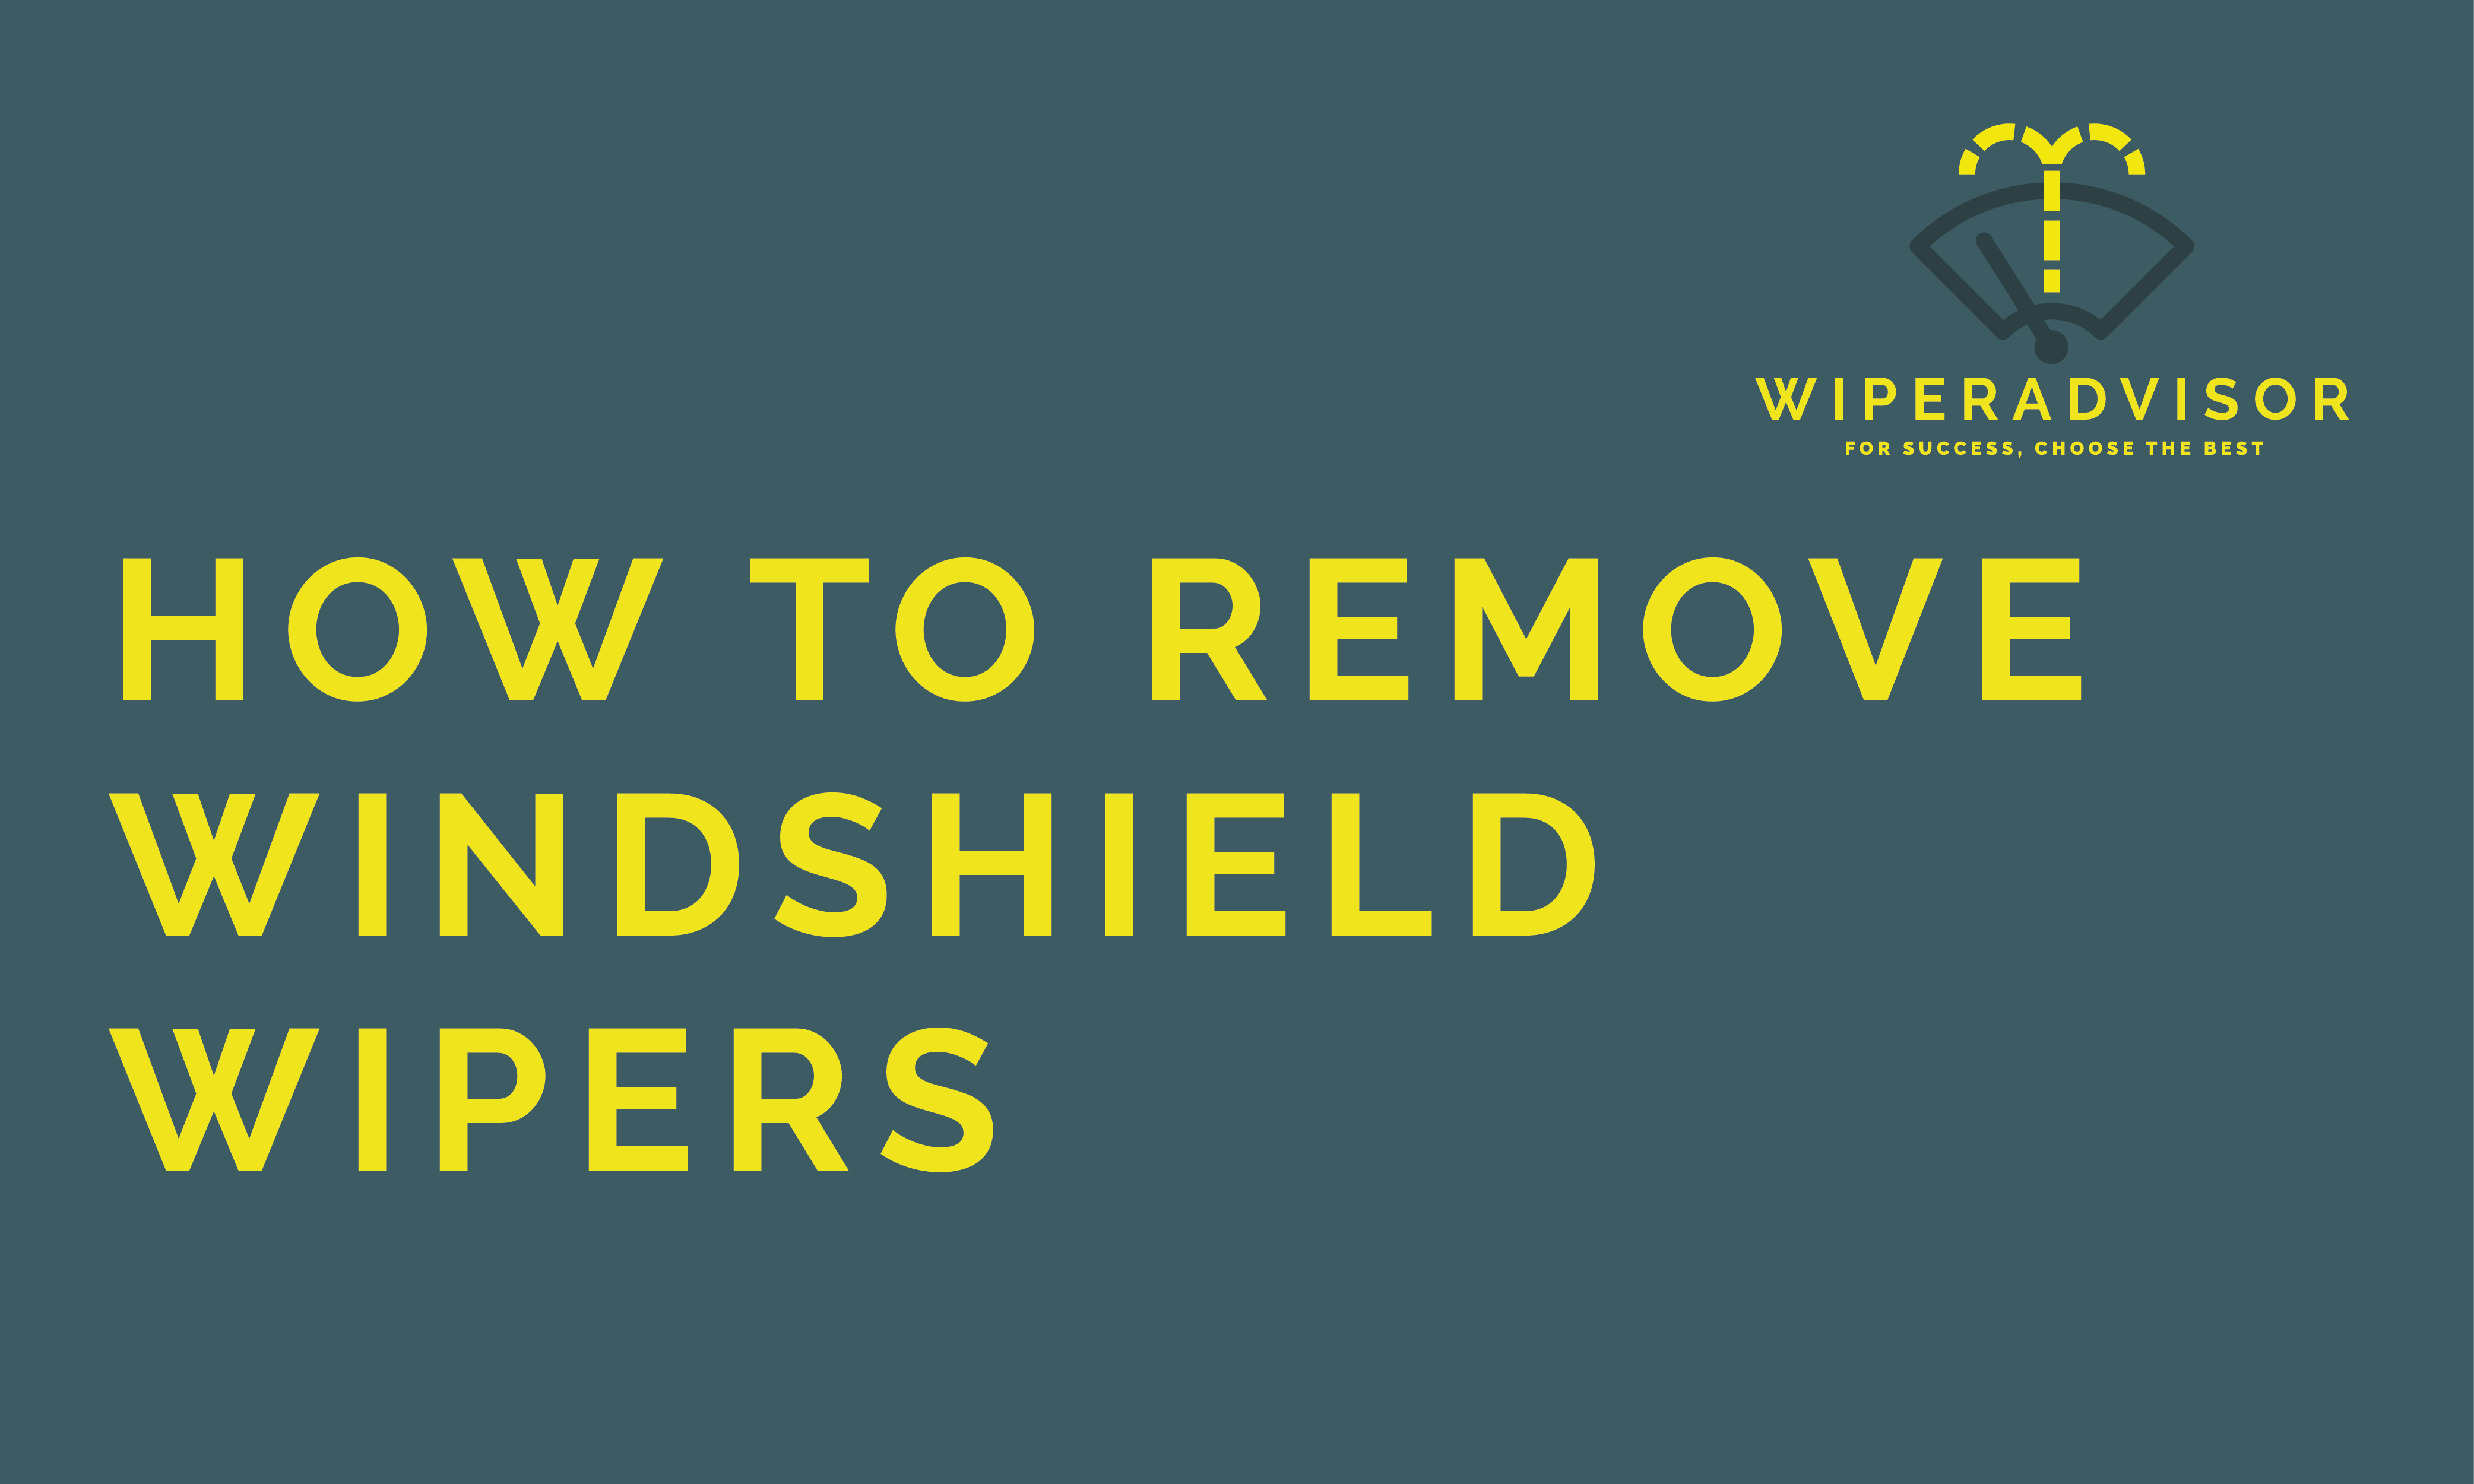 How to remove windshield wipers